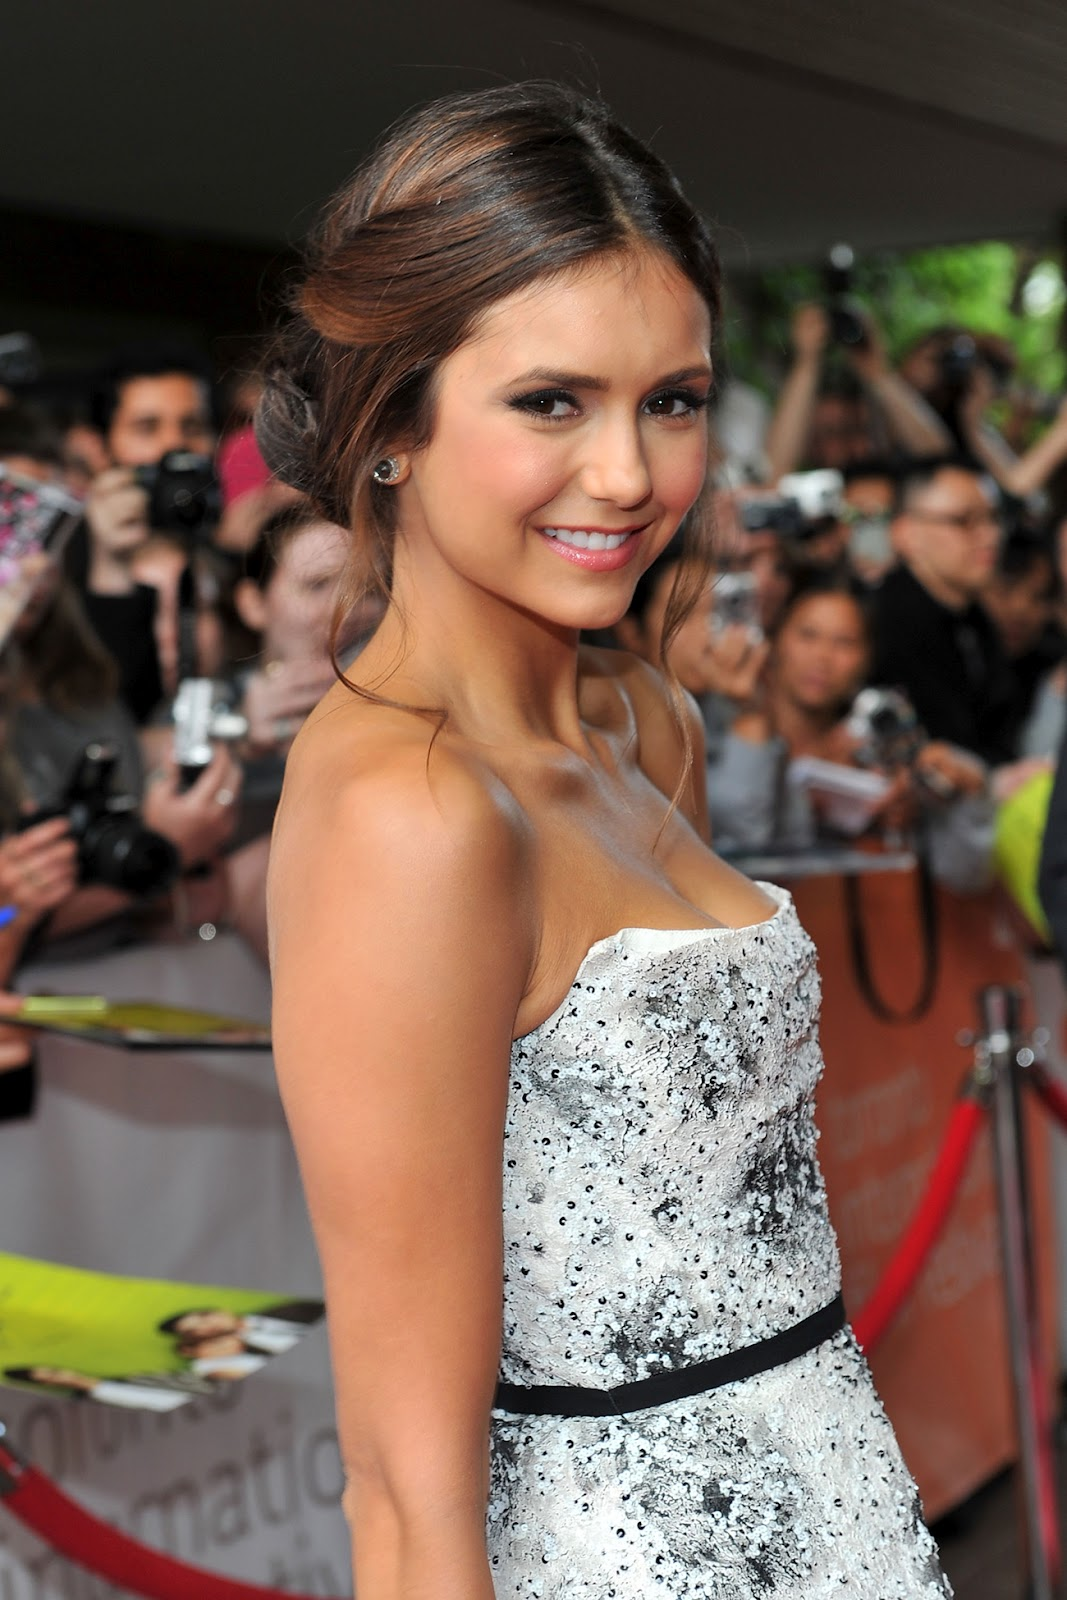 http://1.bp.blogspot.com/-qnyaUpZ7Sa8/UEyknilu2ZI/AAAAAAAAAdQ/7Q96z_-vr6I/s1600/nina-dobrev-the-perks-of-being-a-wallflower-premiere-2012-toronto-international-film-festival-tiff-monique-lhuillier-dress.jpg